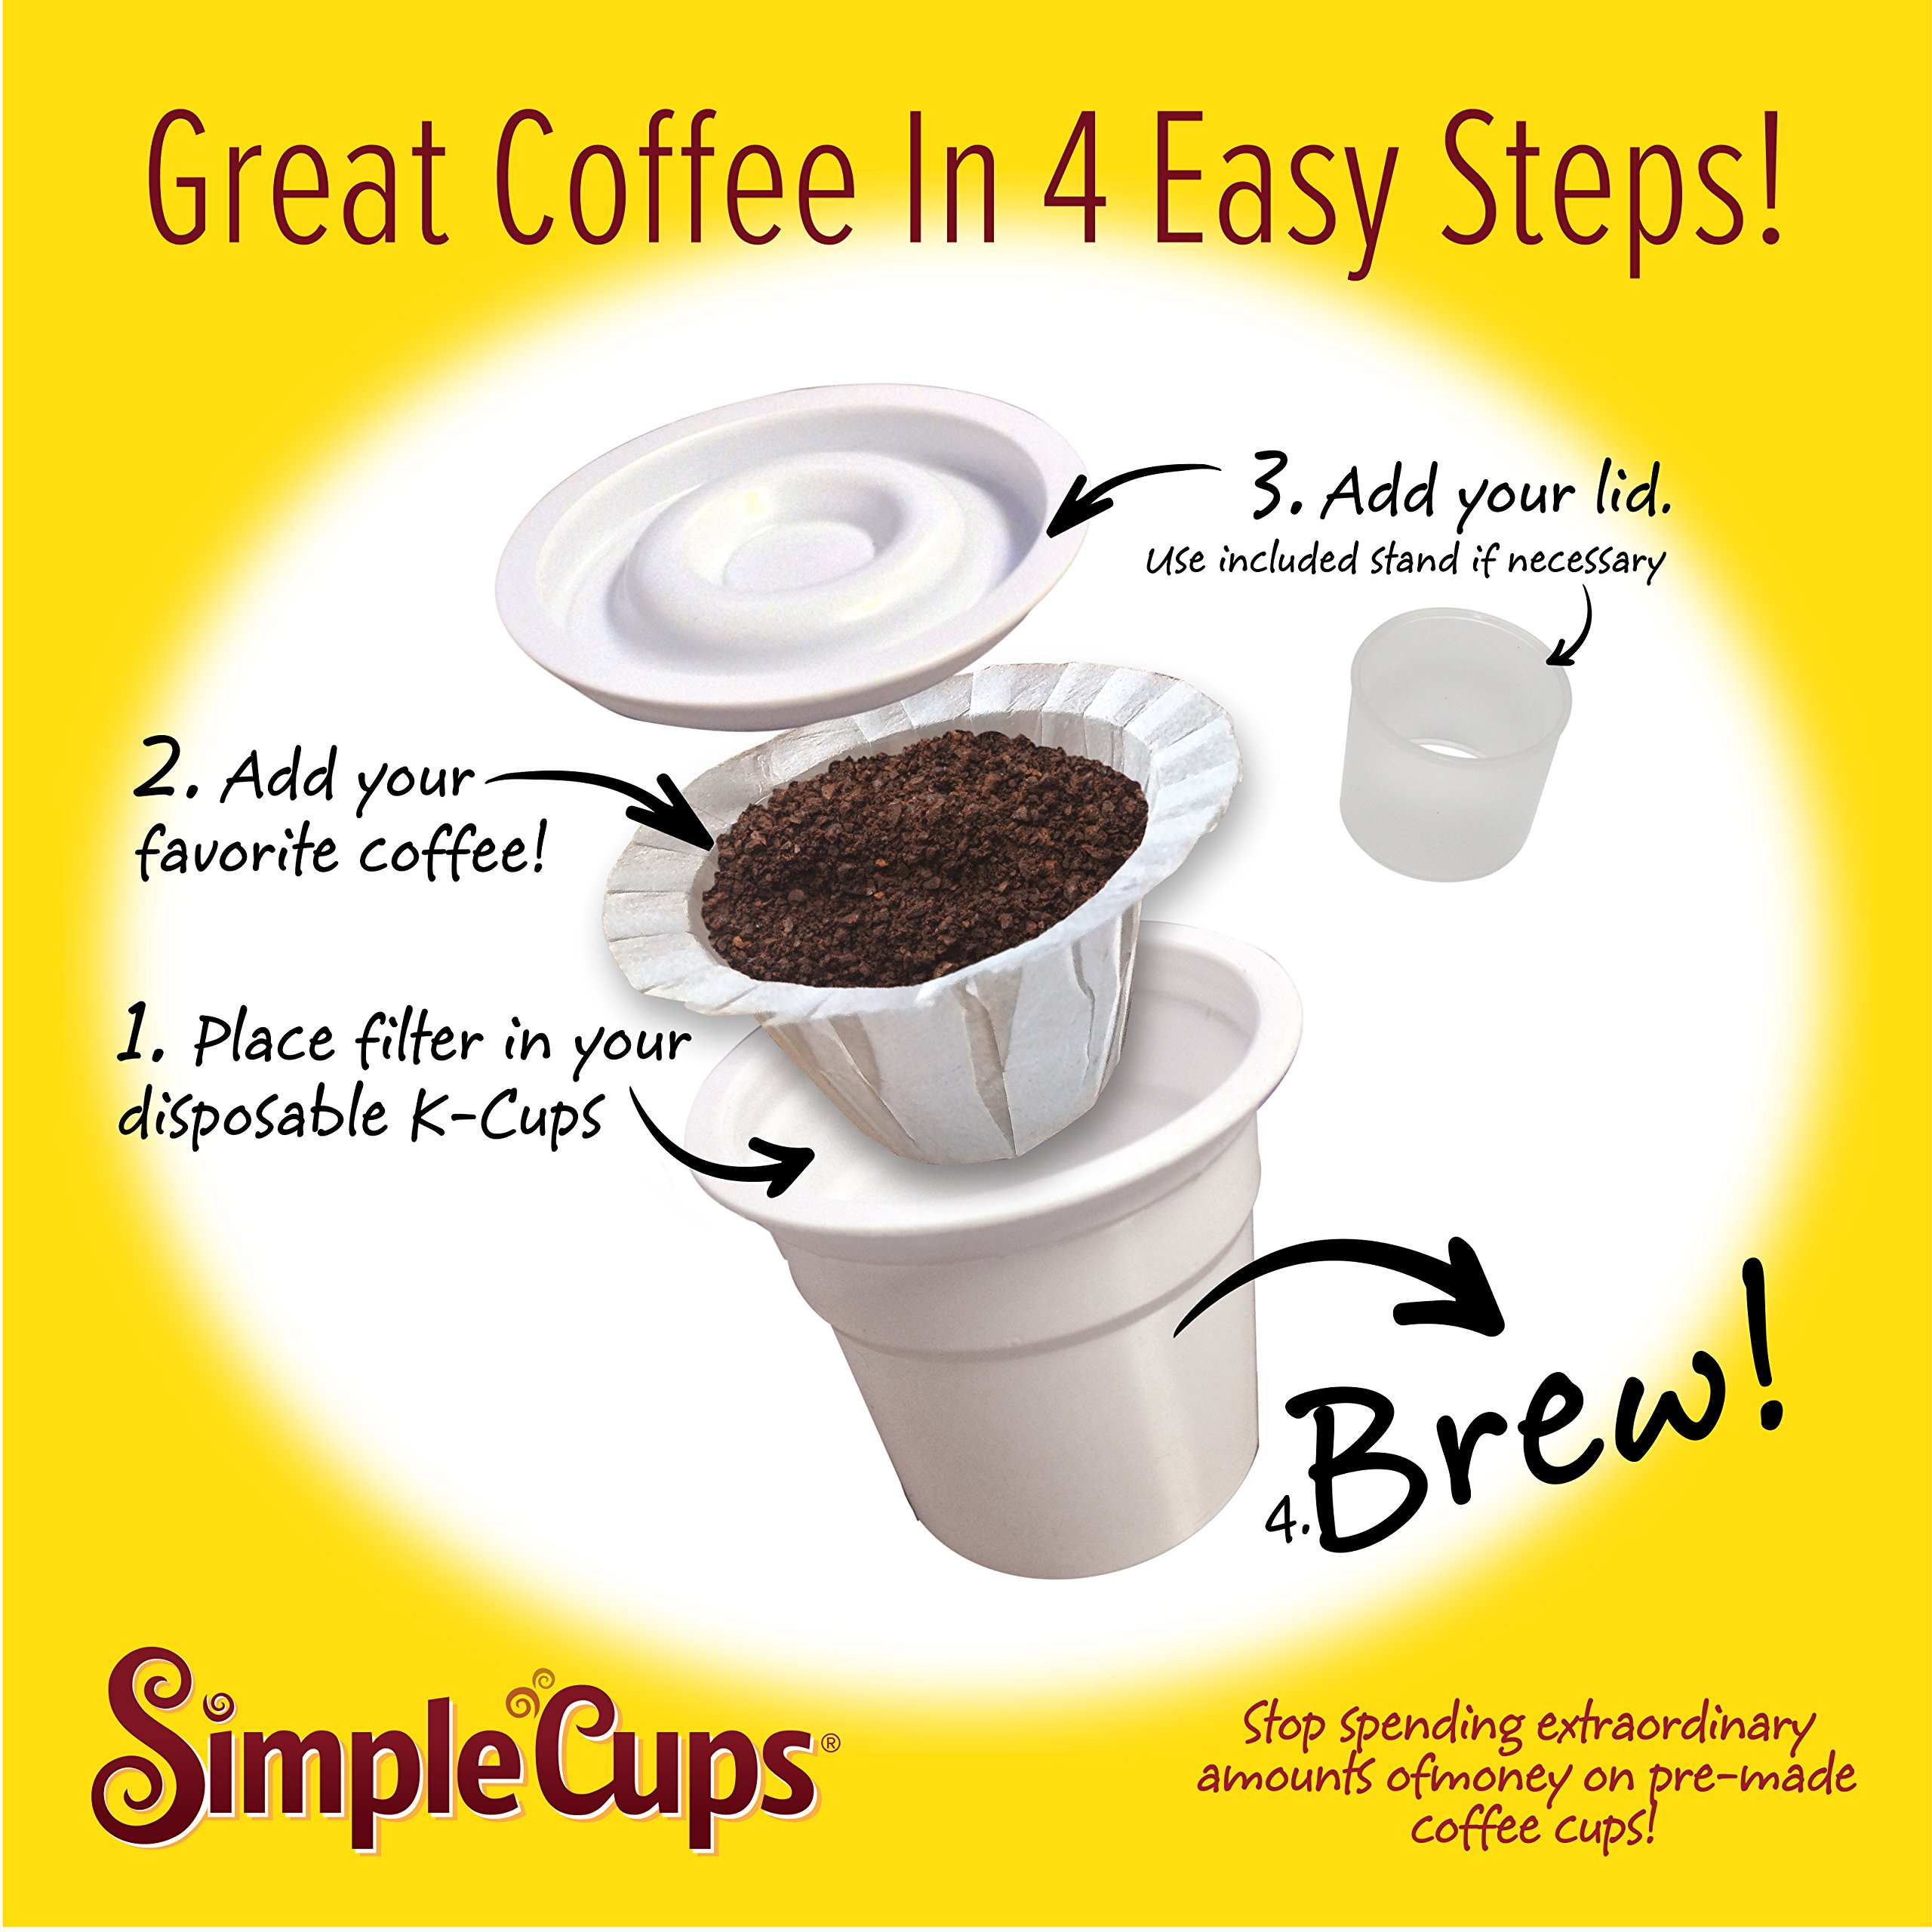 Disposable Cups for Use in Keurig Brewers - Simple Cups - 50 Cups, Lids, and Filters - Use Your Own Coffee in K-cups by Simple Cups (Image #3)